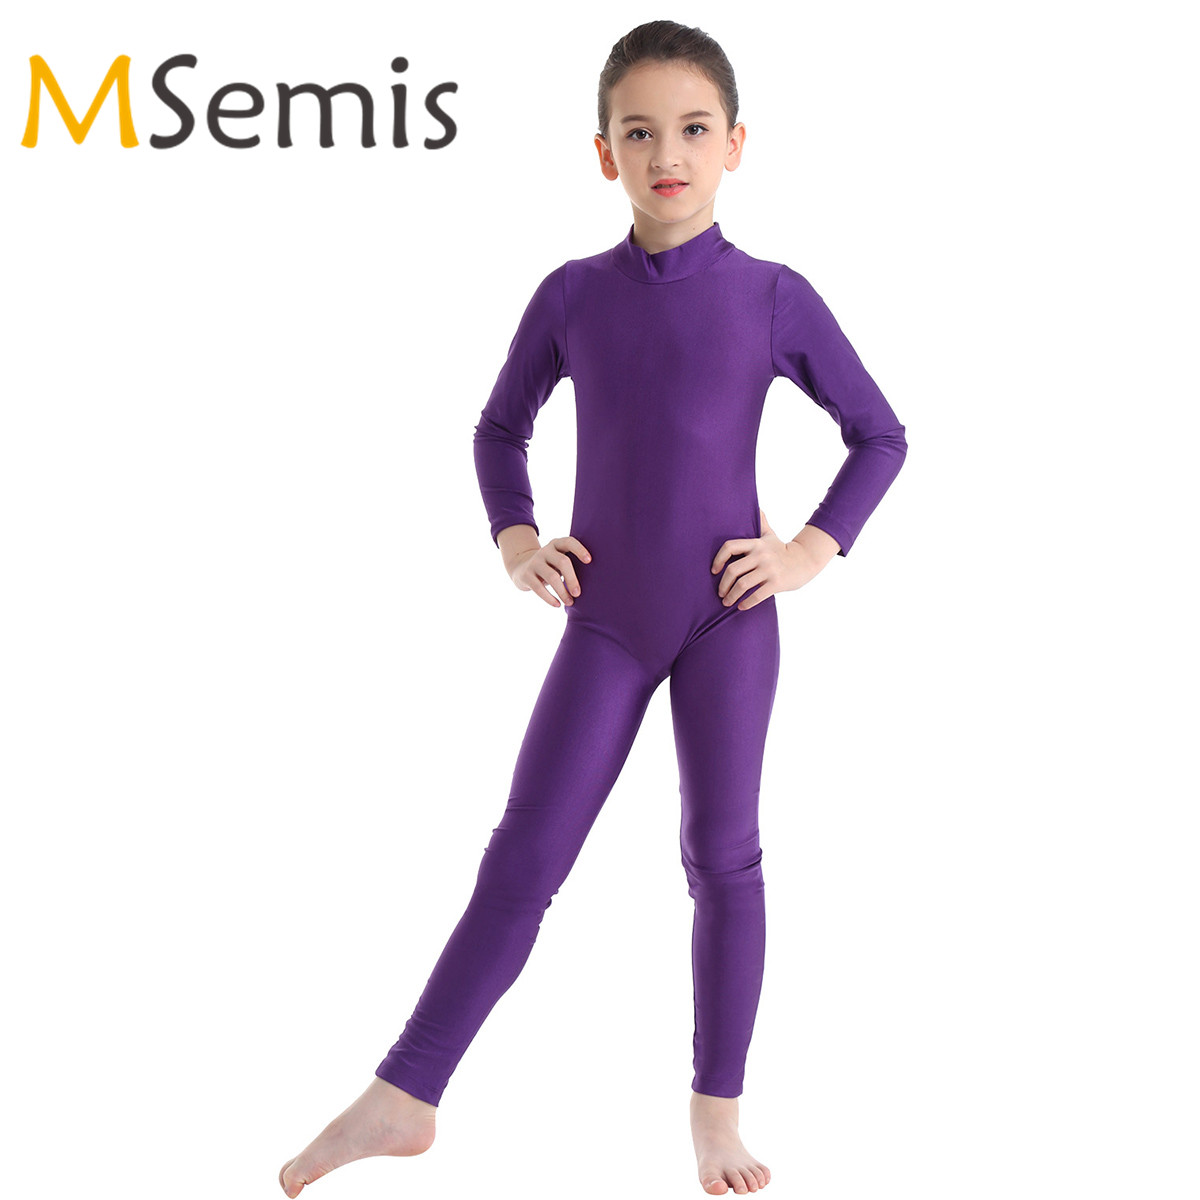 Kids Girls Gymnastics Swimsuit For Dancing Long Sleeves Zippered Ballet Dance Leotard Mesh Bodysuit Jumpsuit Unitard Dancewear